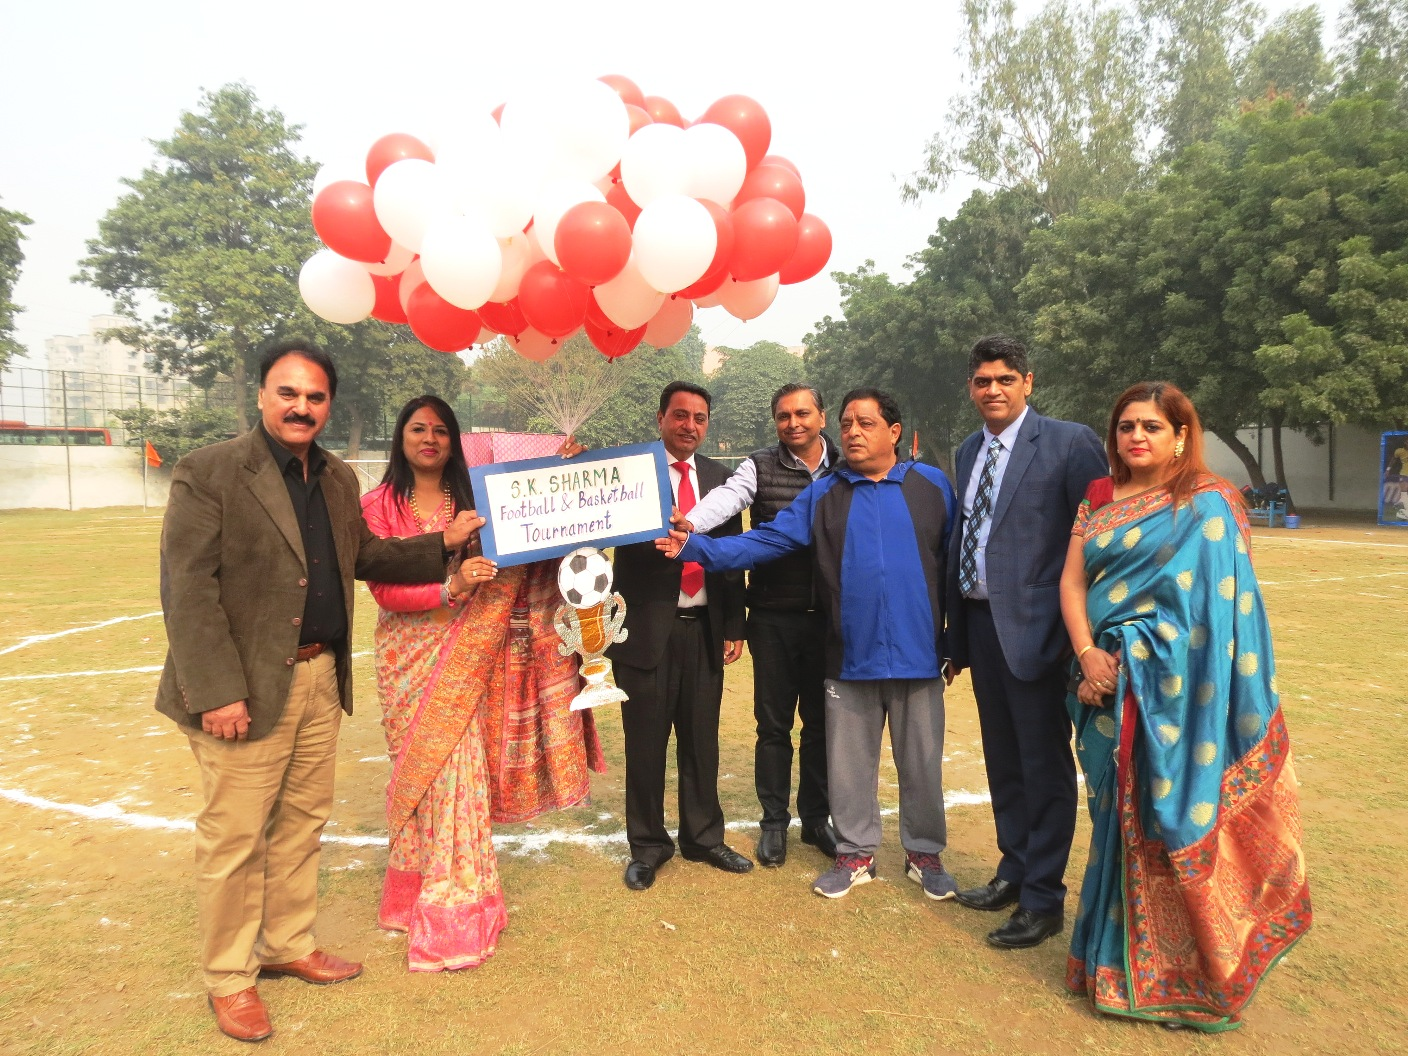 Opening Ceremony of S K Sharma Memorial Interstate Football and Basketball Tournament